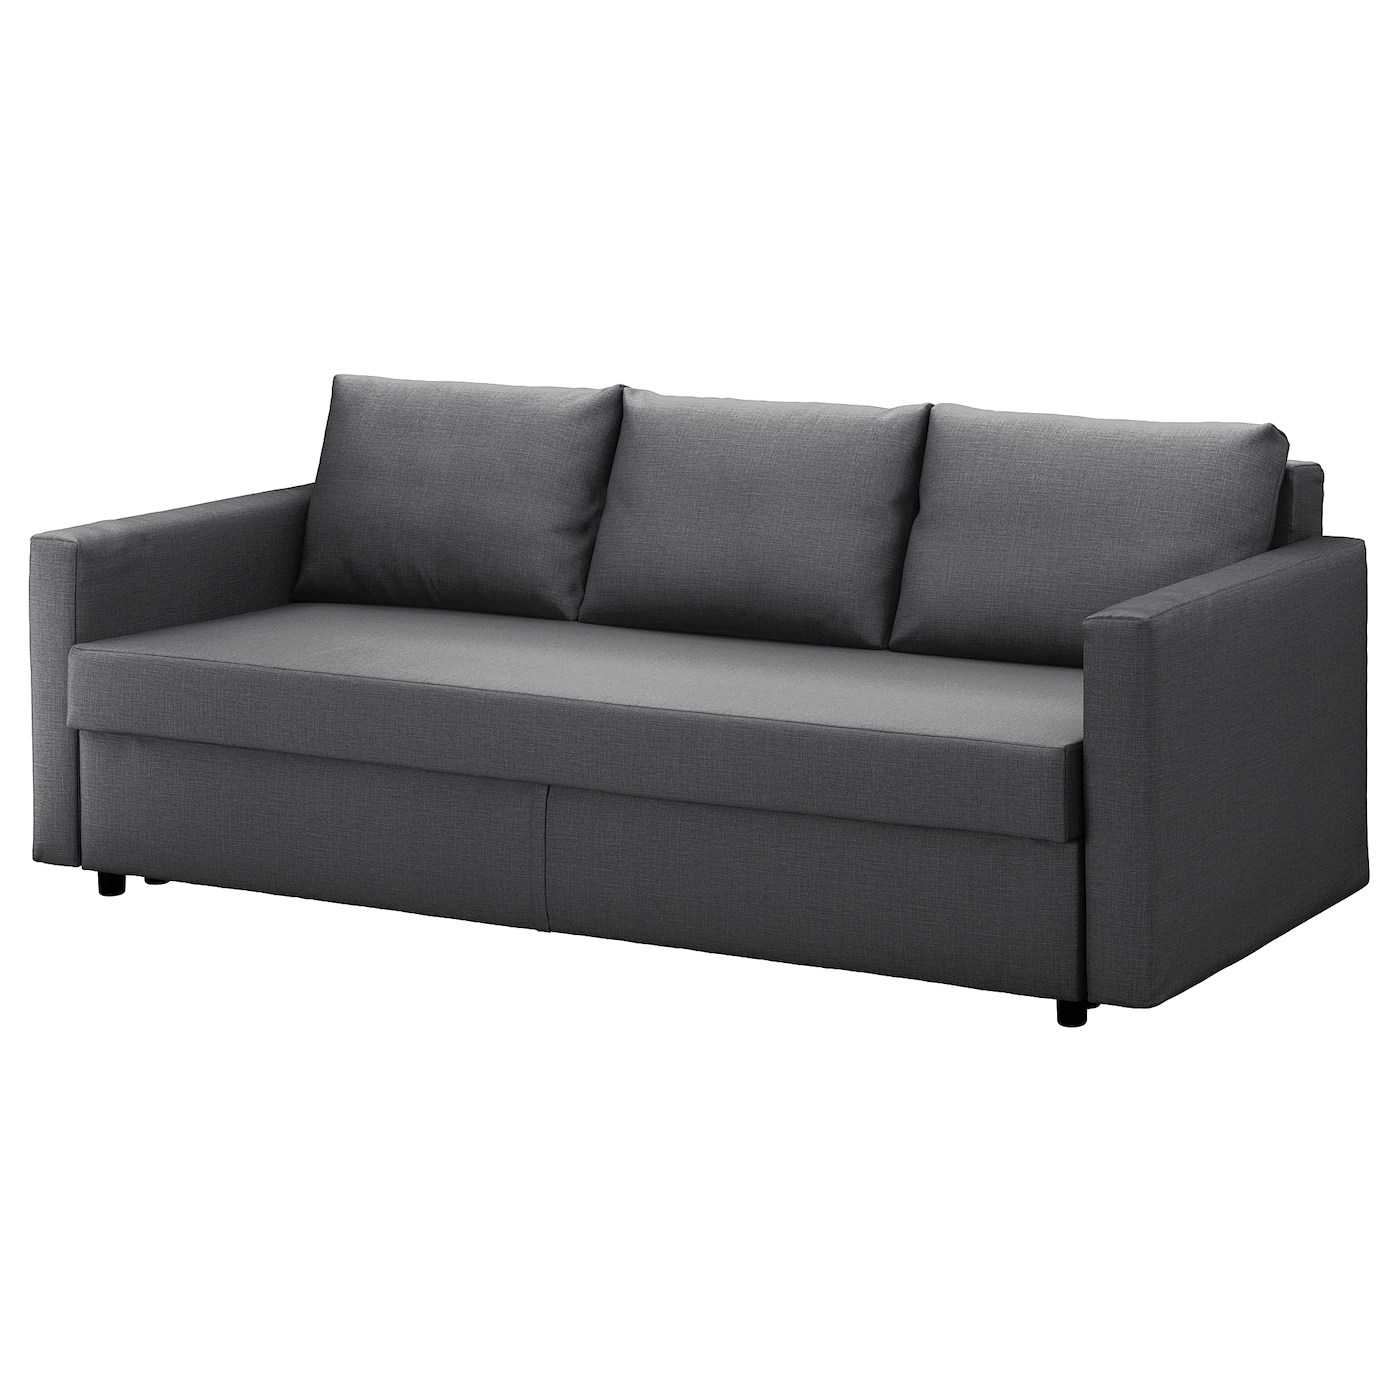 Storage Beds Edmonton Corner Sofa Beds Futons Chair Beds Ikea